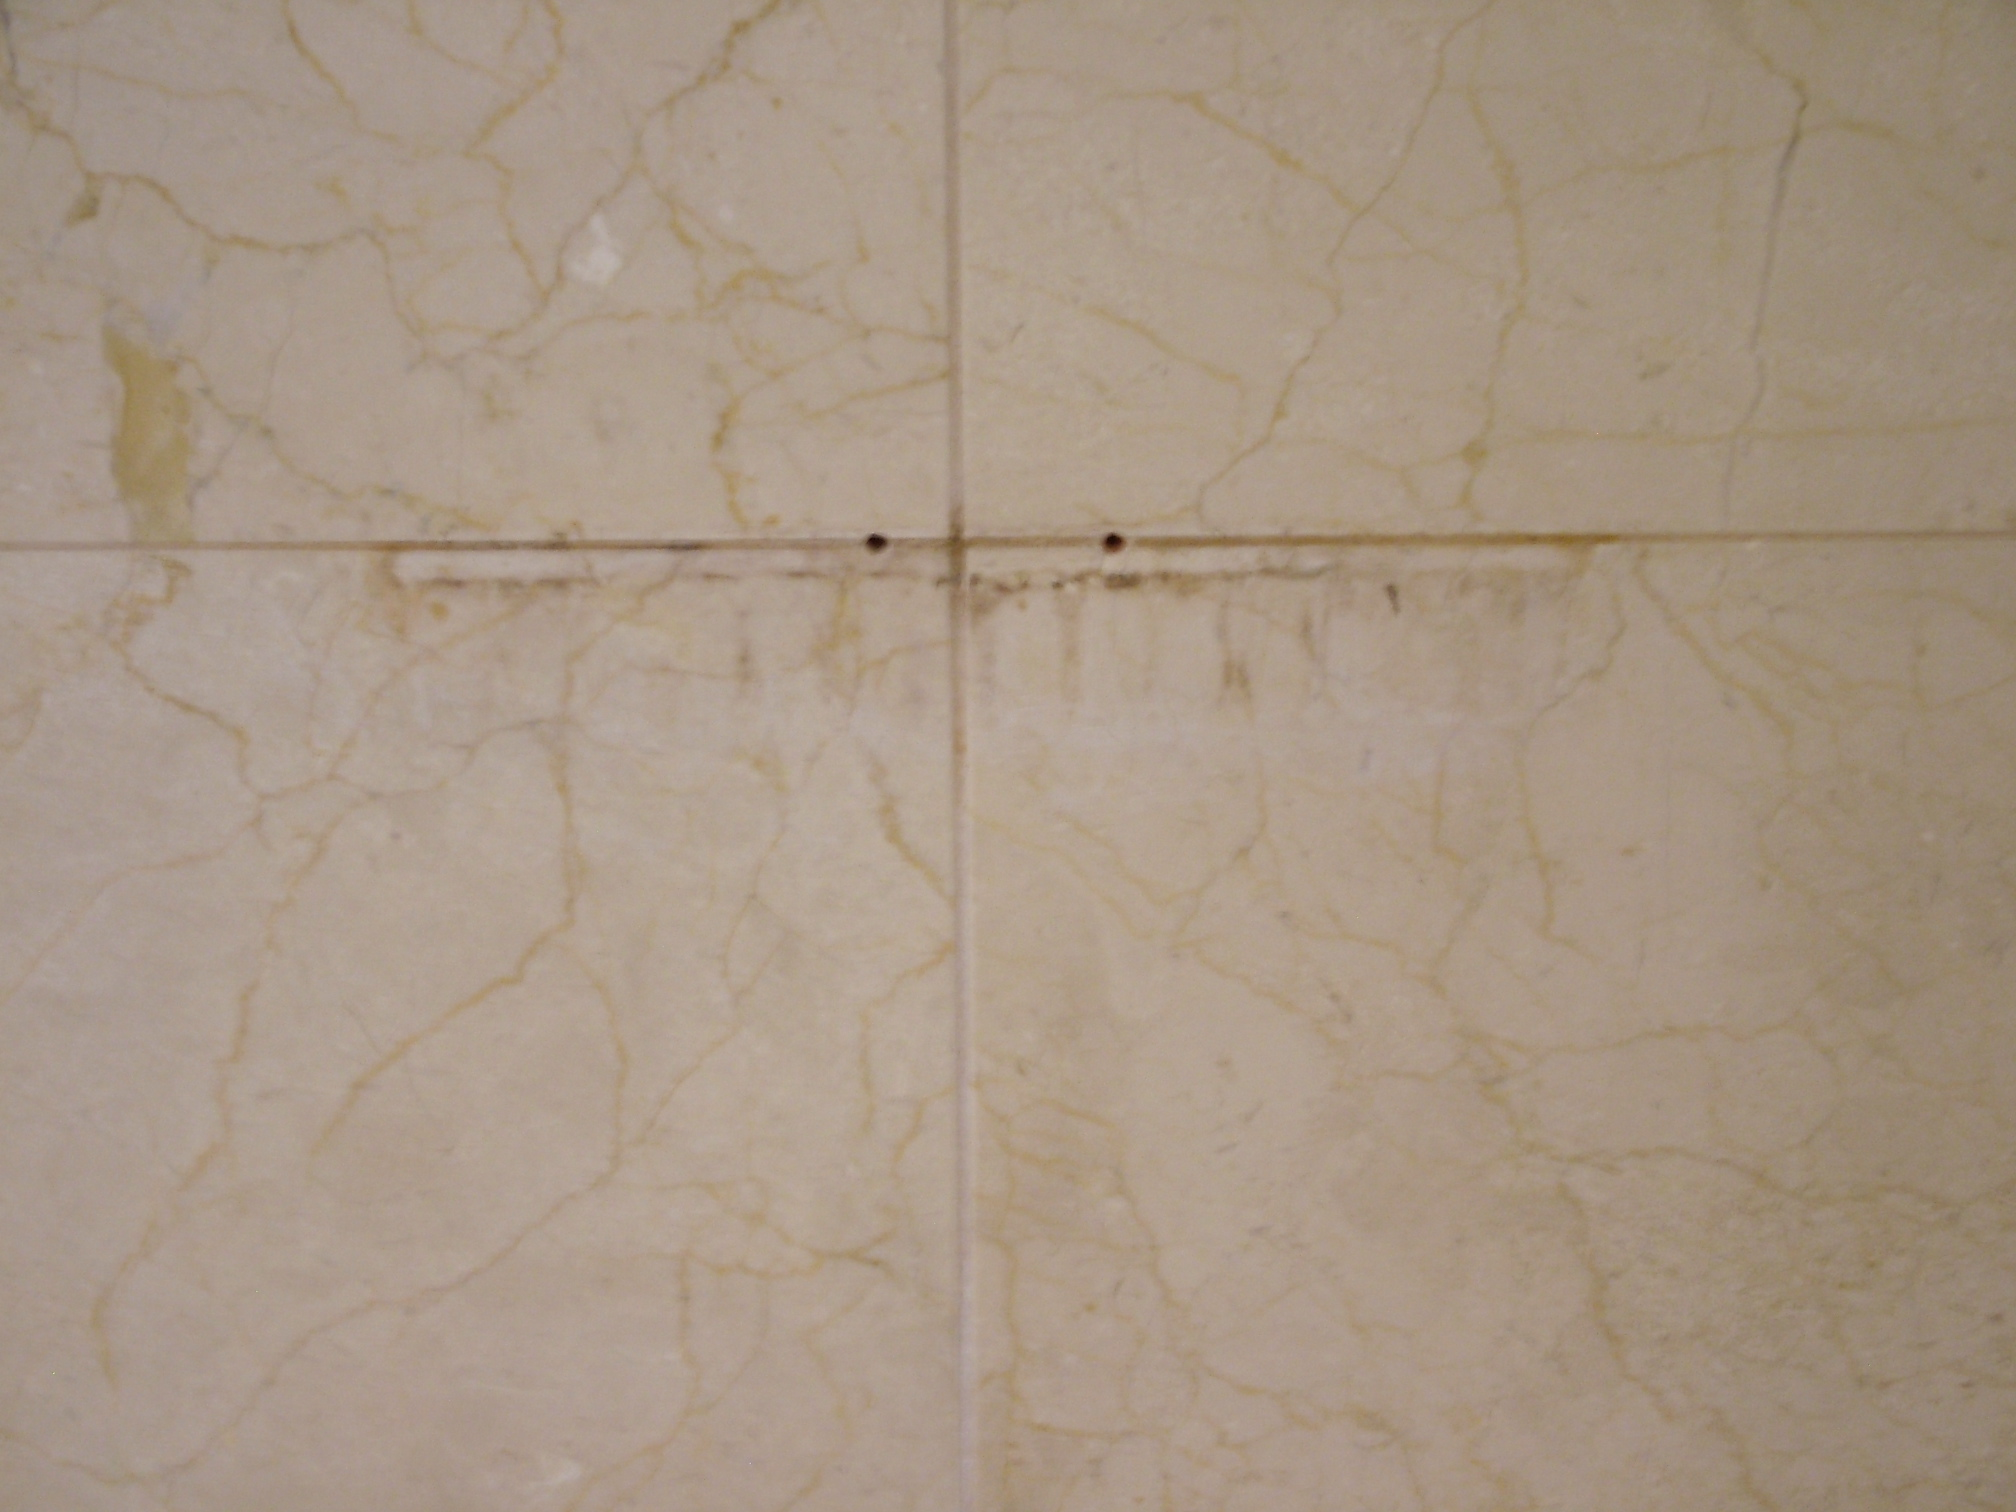 Lustre ltd specialists in marble cleaning polishing and tile lustre ltd specialists in marble cleaning polishing and tile grout restoration repair leaky shower wall floor tiles dailygadgetfo Gallery